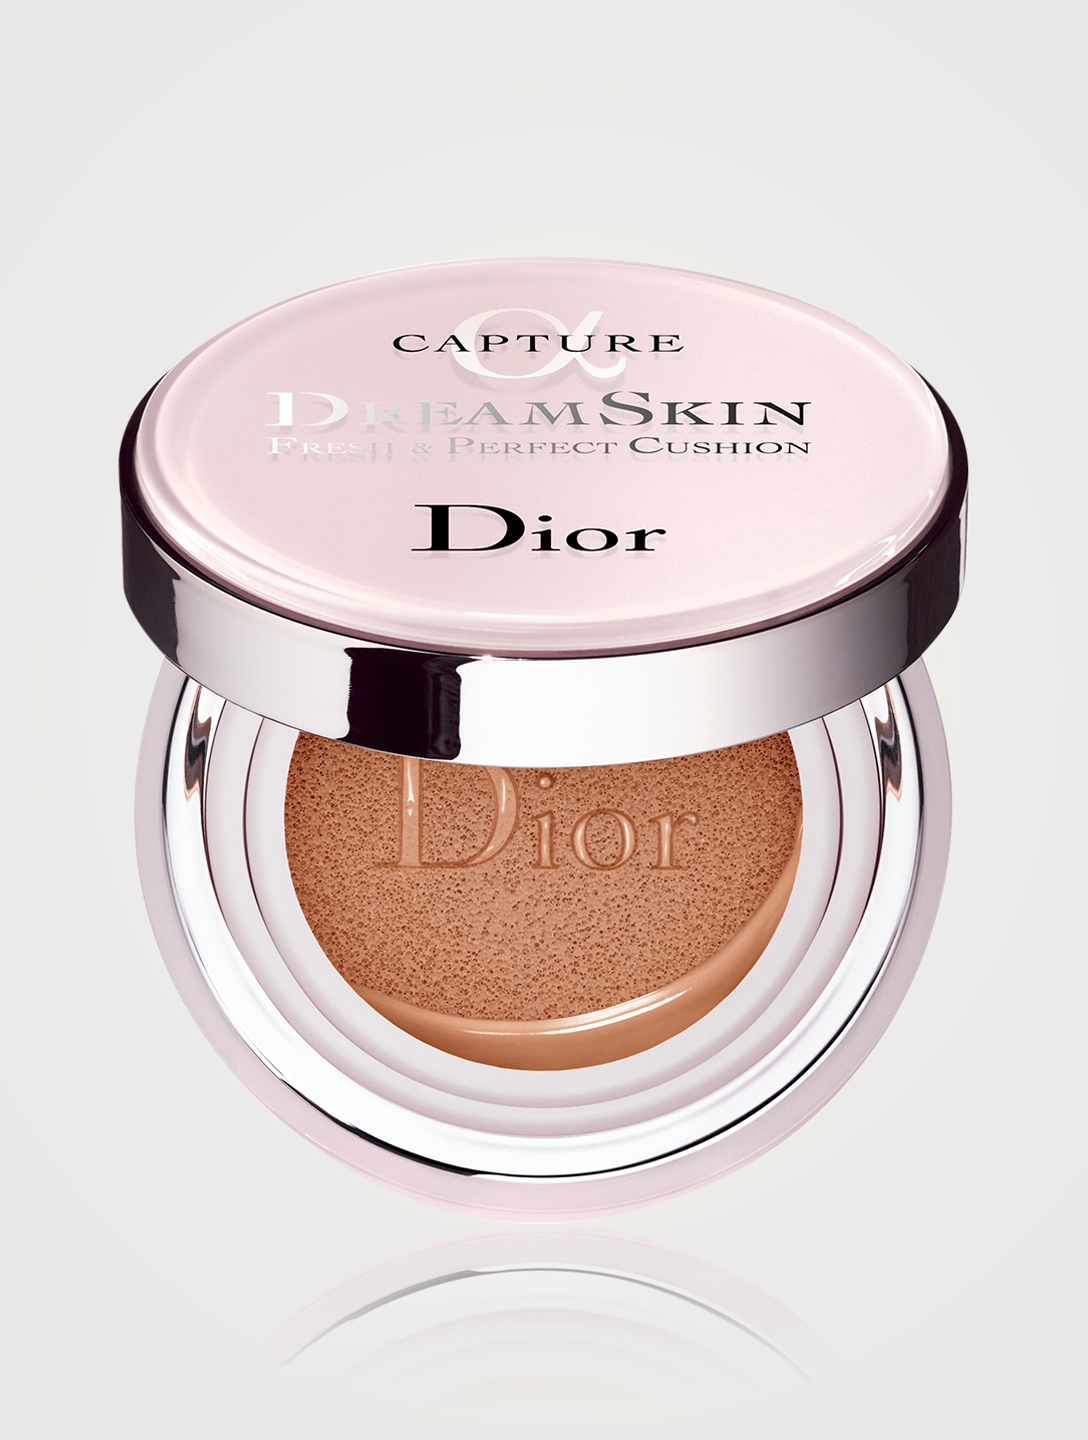 DIOR Dreamskin Fresh & Perfect Cushion Beauty Brown